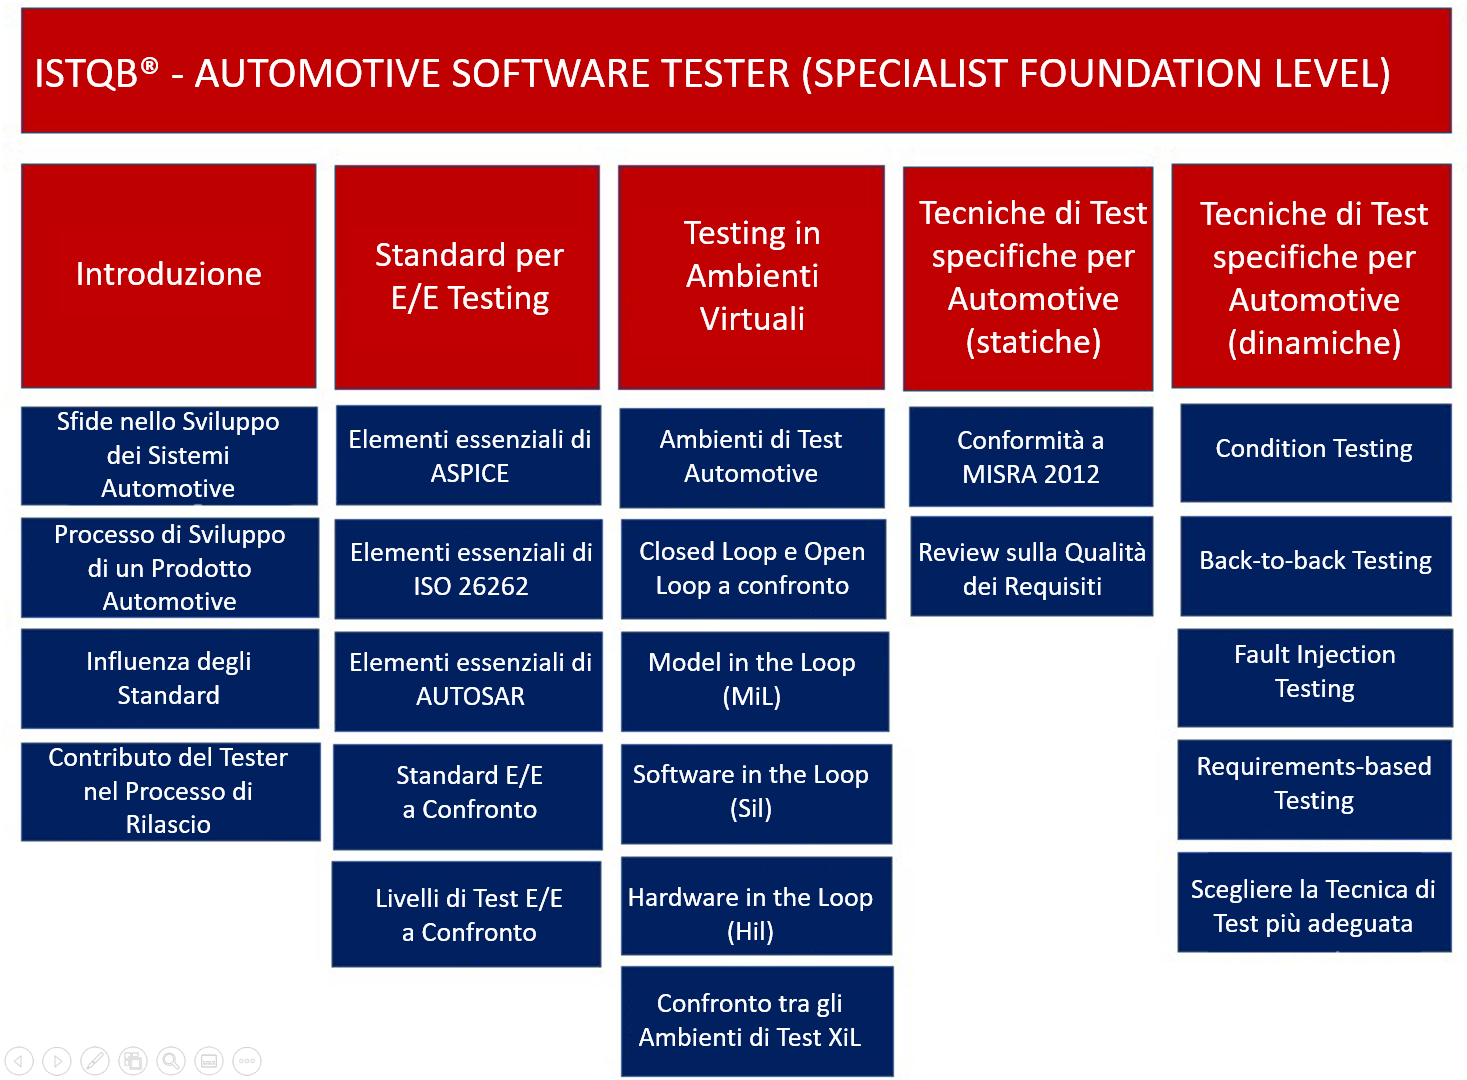 Contenuti della certificazione (Specialist) Foundation Level Automotive Software Tester